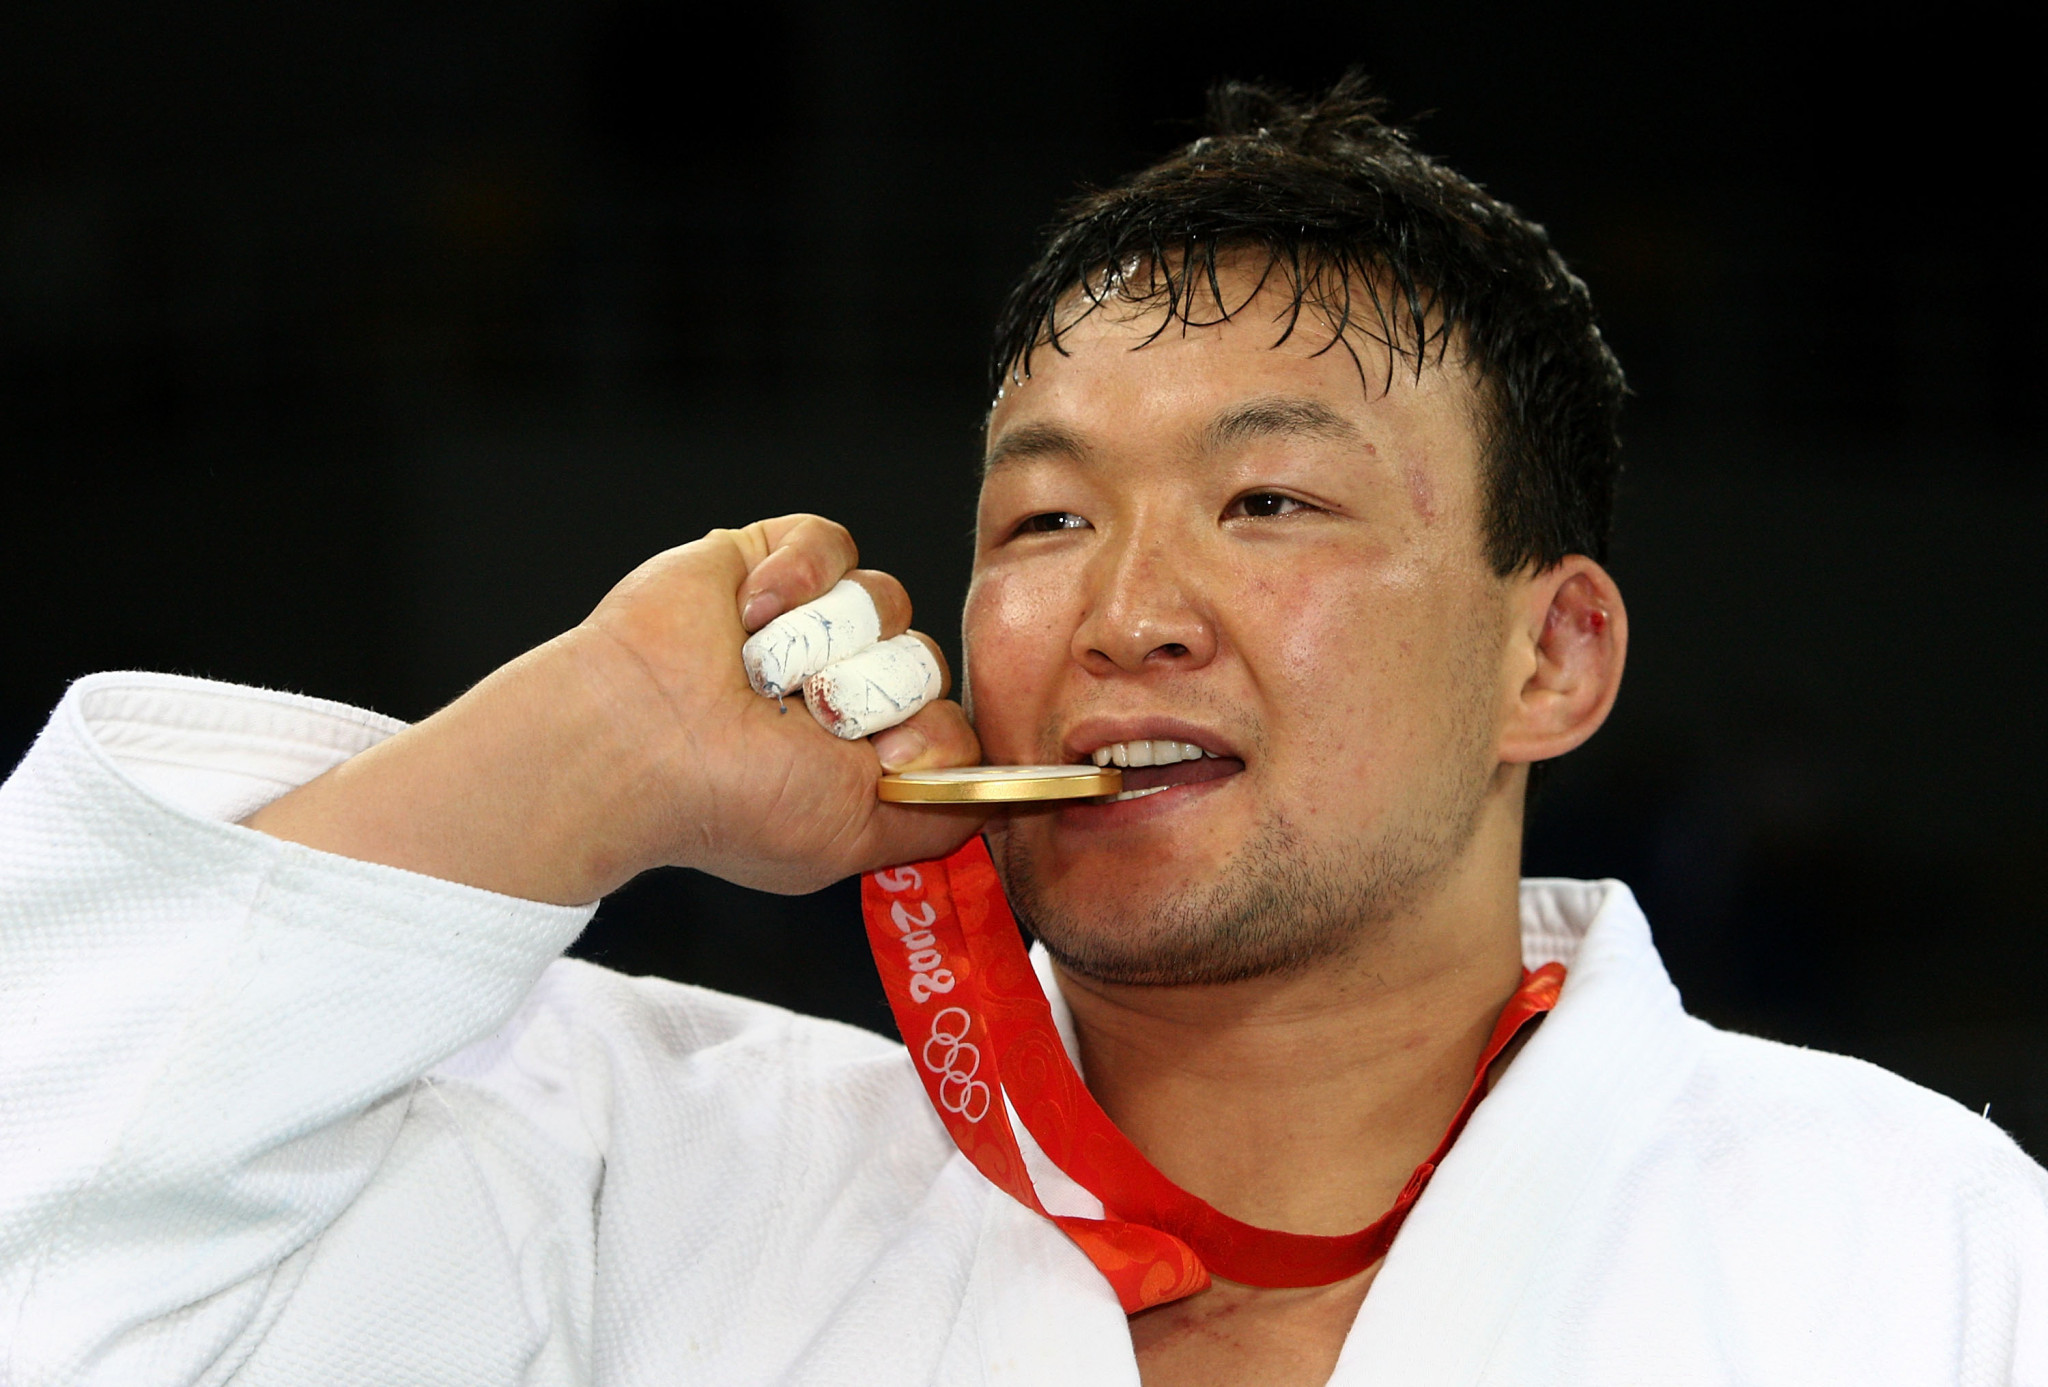 Naidan Tuvshinbayar, the current President of the Mongolia National Olympic Committee, became the country's first ever Olympic gold medallist at Beijing 2008 ©Getty Images